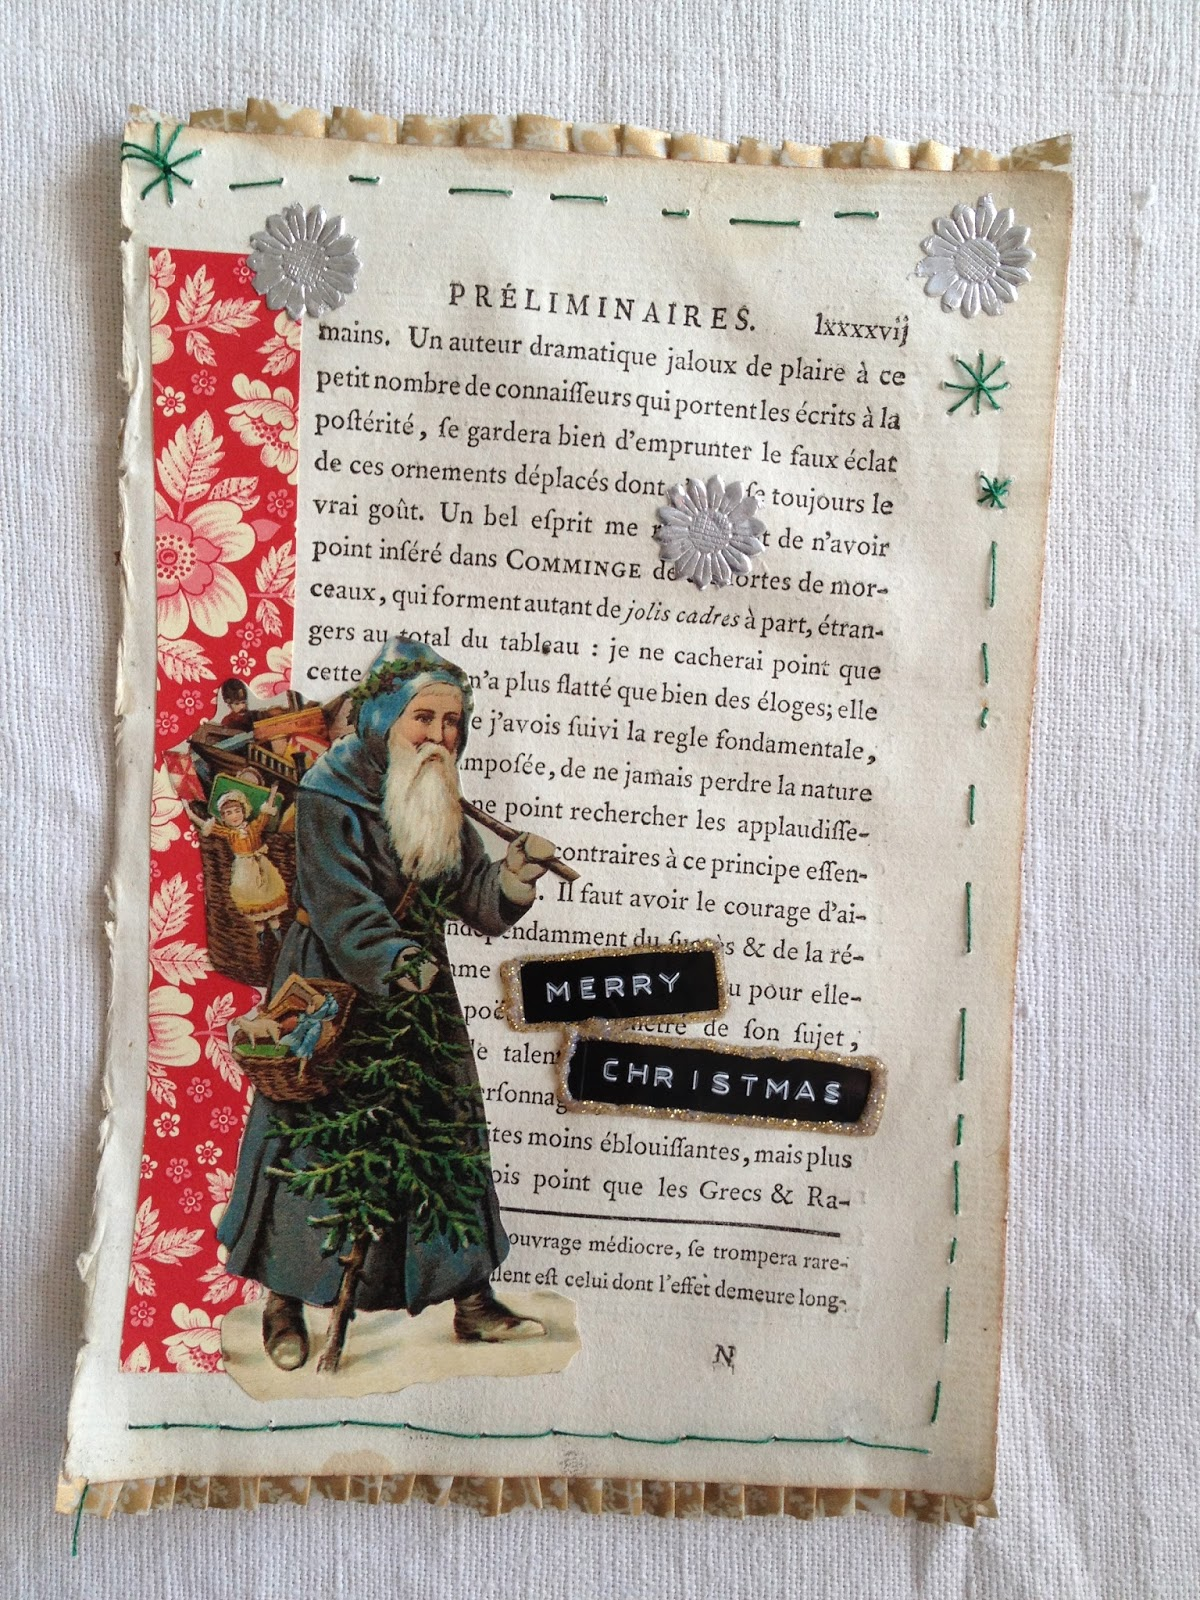 One bunting away diy 6 paper crafts using old books - Diy uses for old books ...